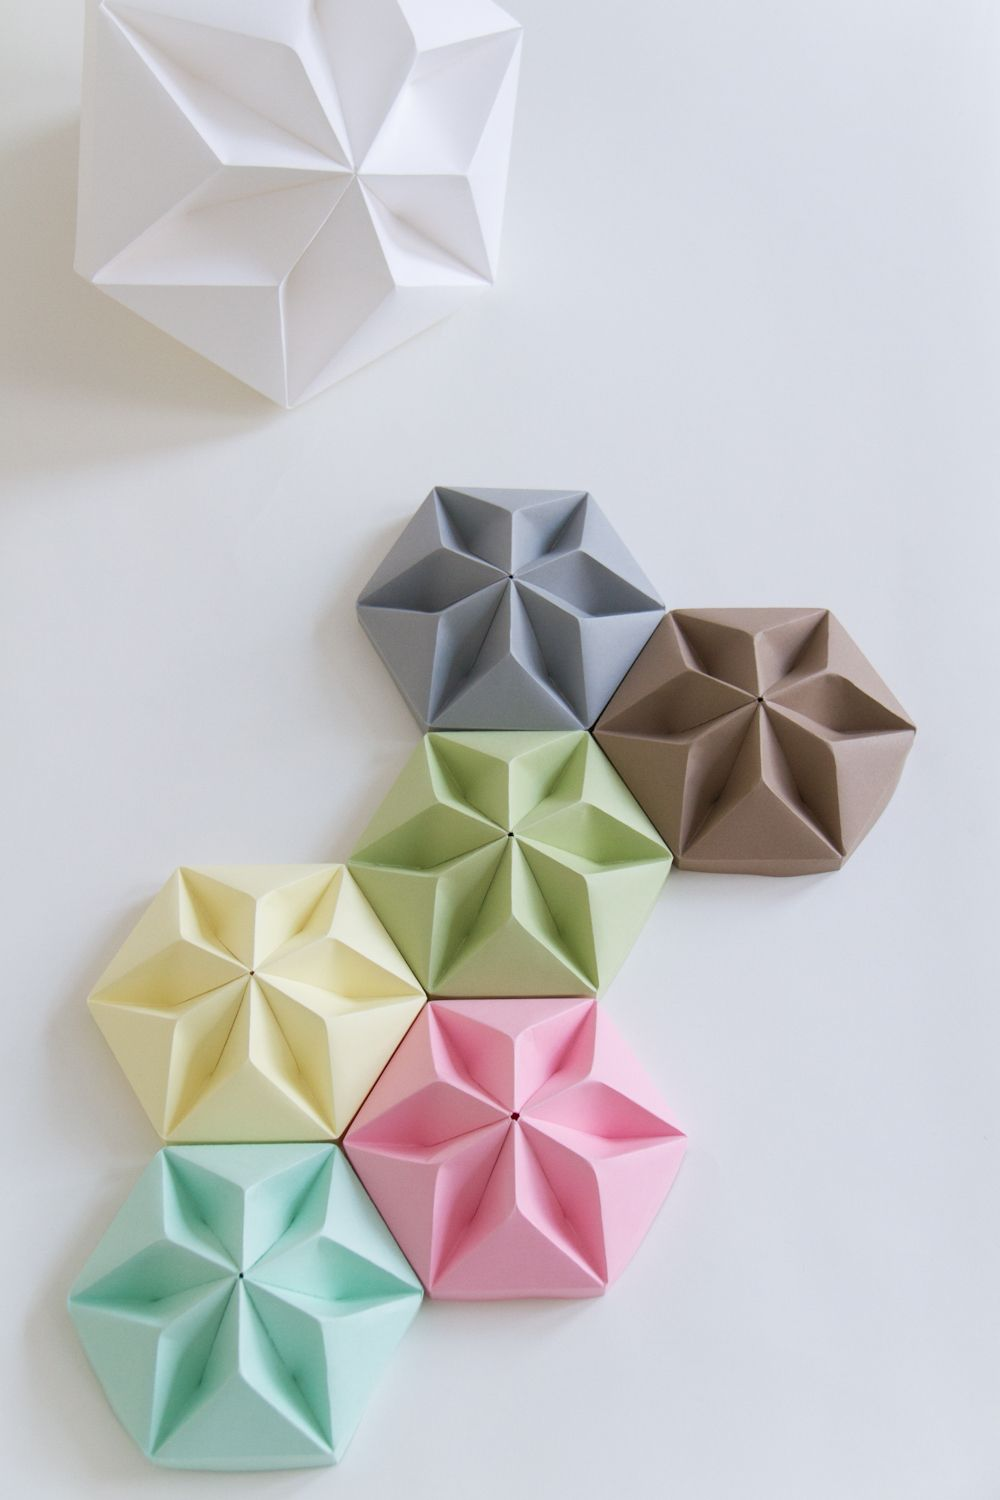 40 Origami Flowers You Can Do Flower Origami Paper And Origami Ideas